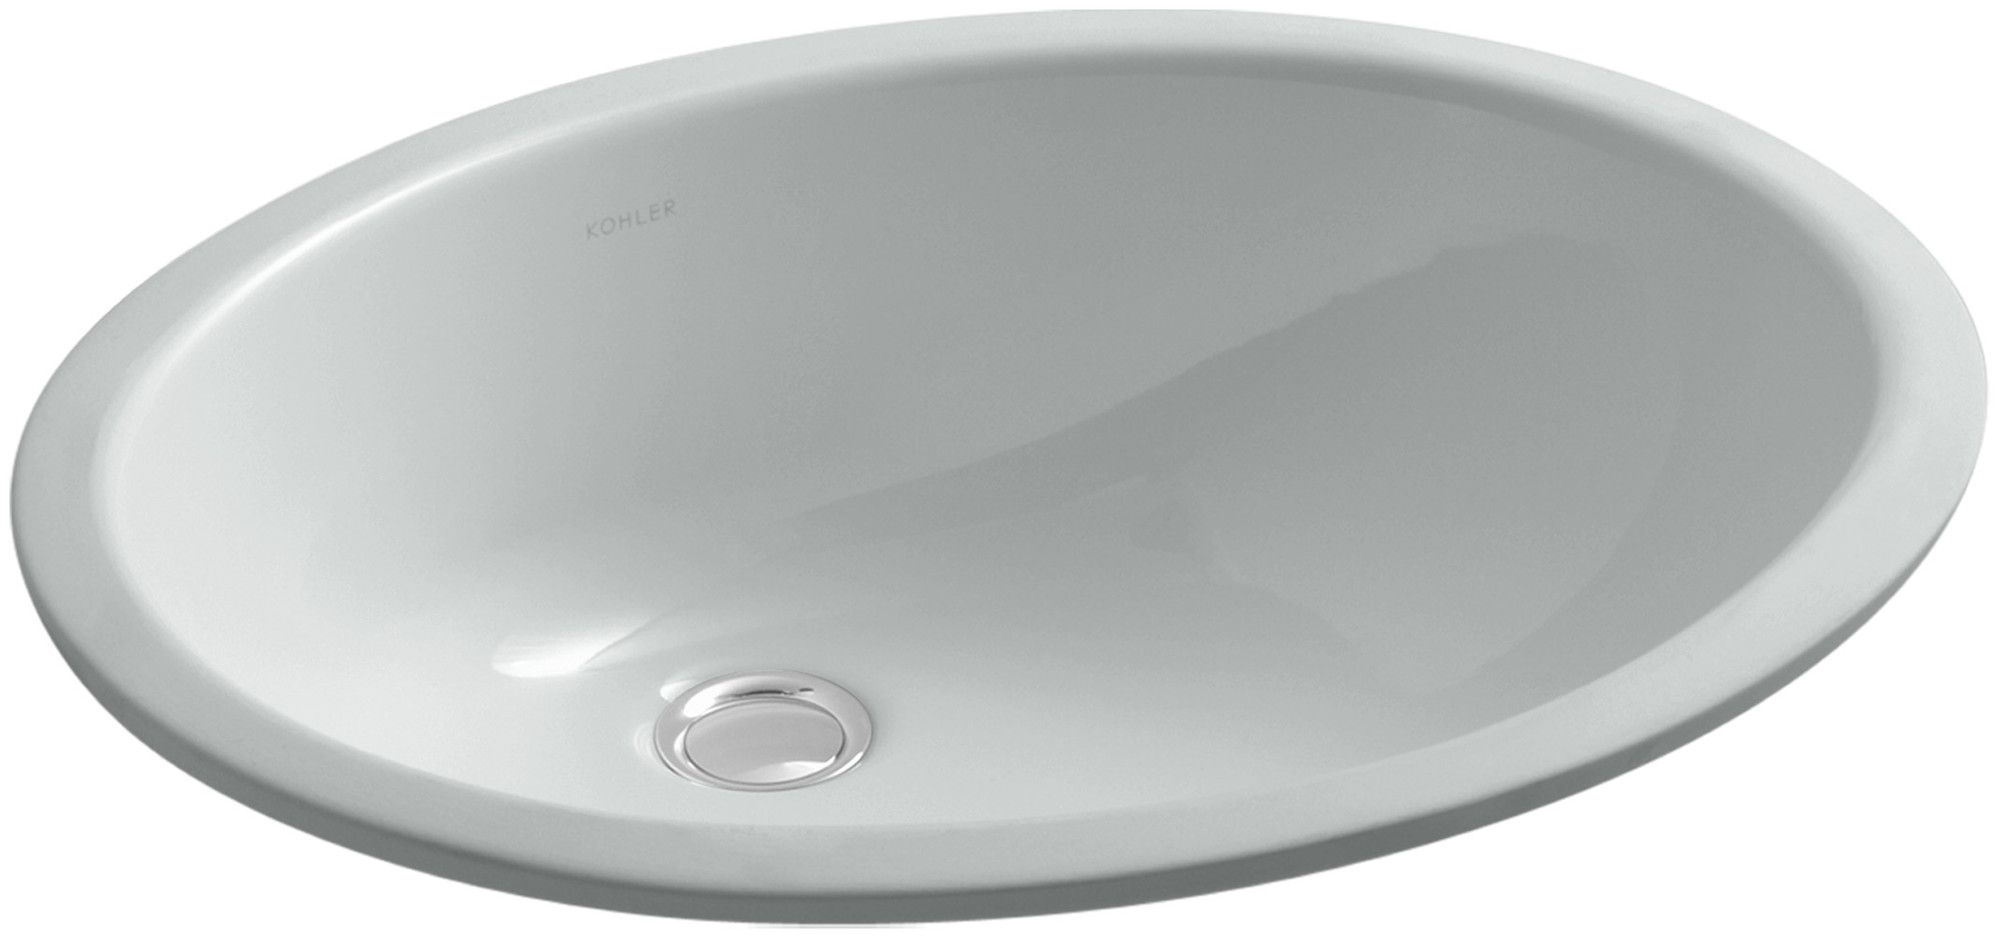 Caxton Undermount Bathroom Sink With Overflow And Clamp Assembly